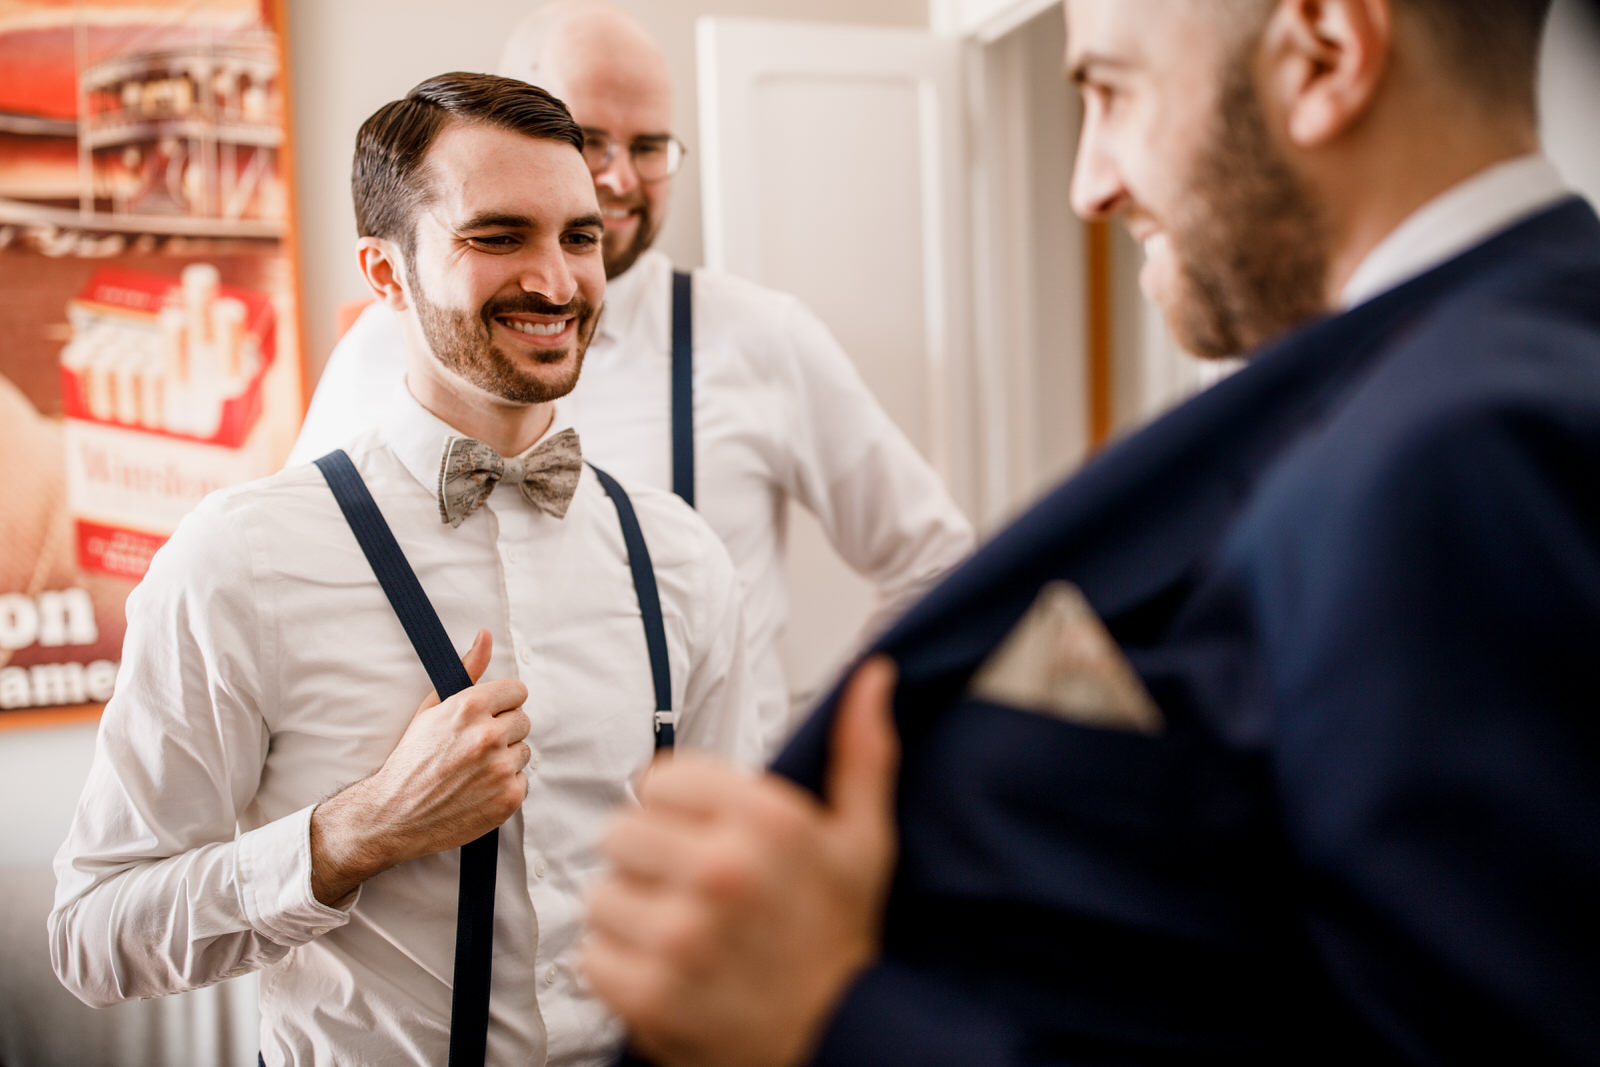 groom preparation before a wedding